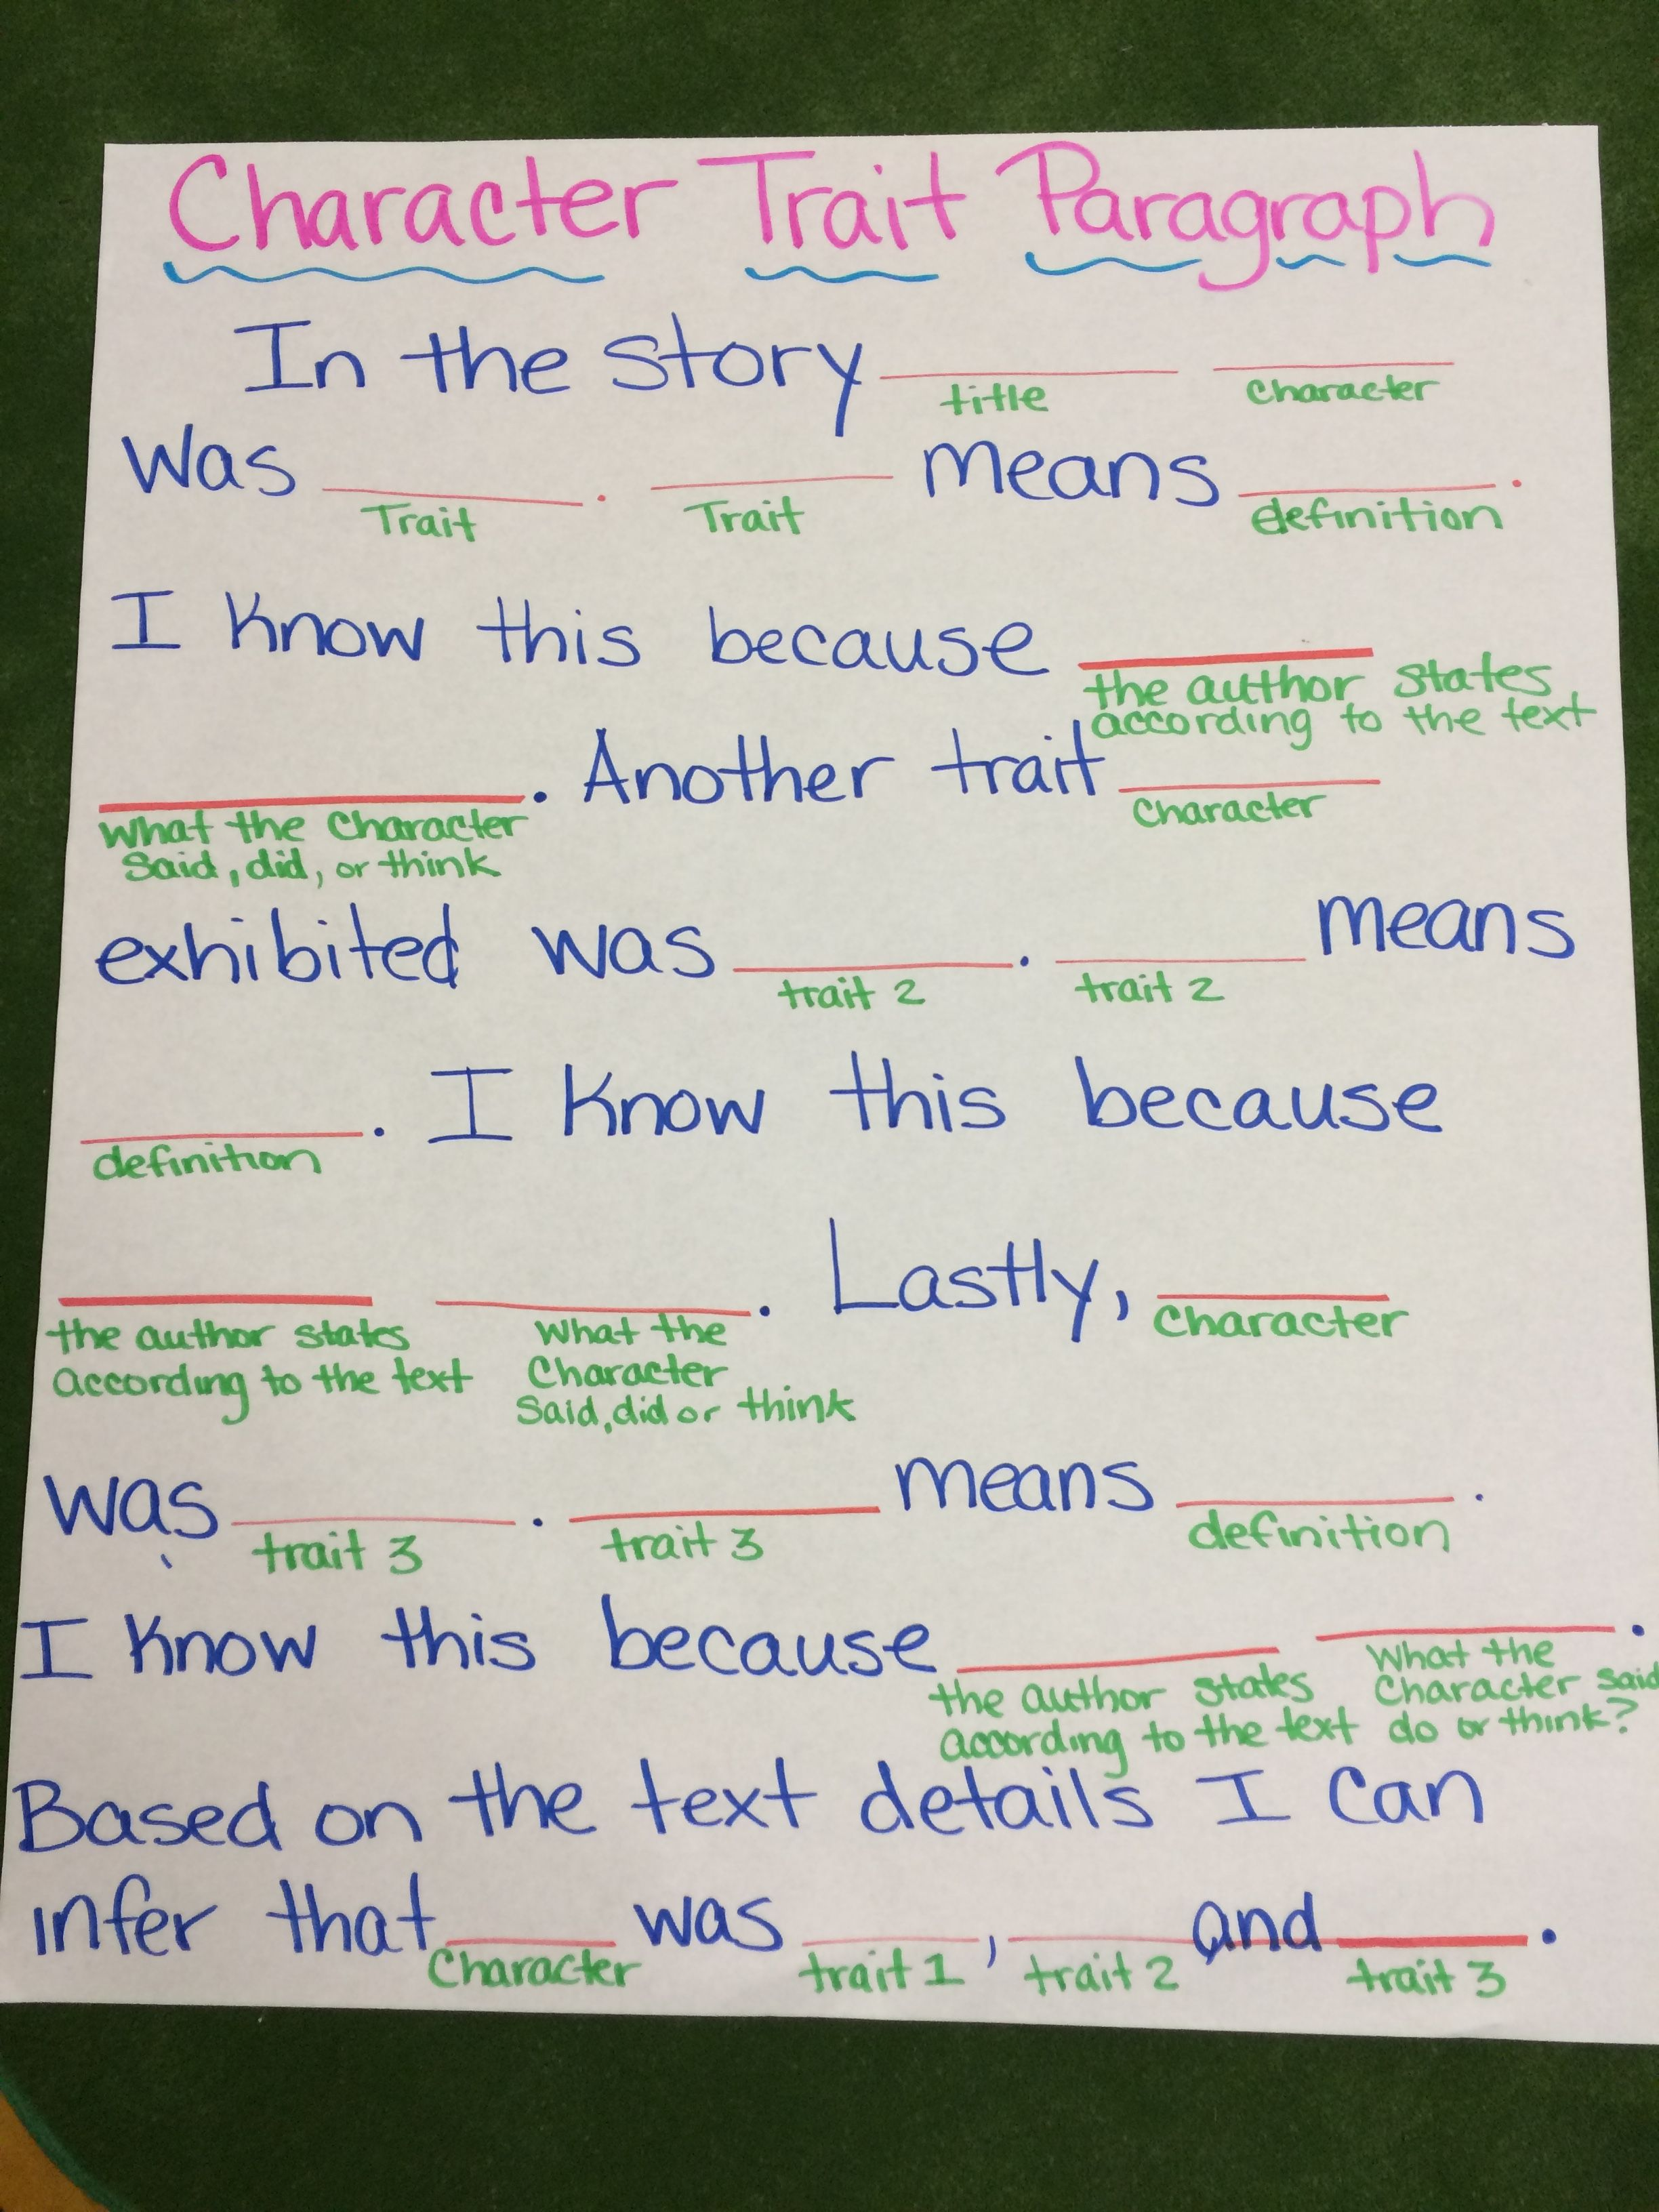 Character Trait Paragraph Frame